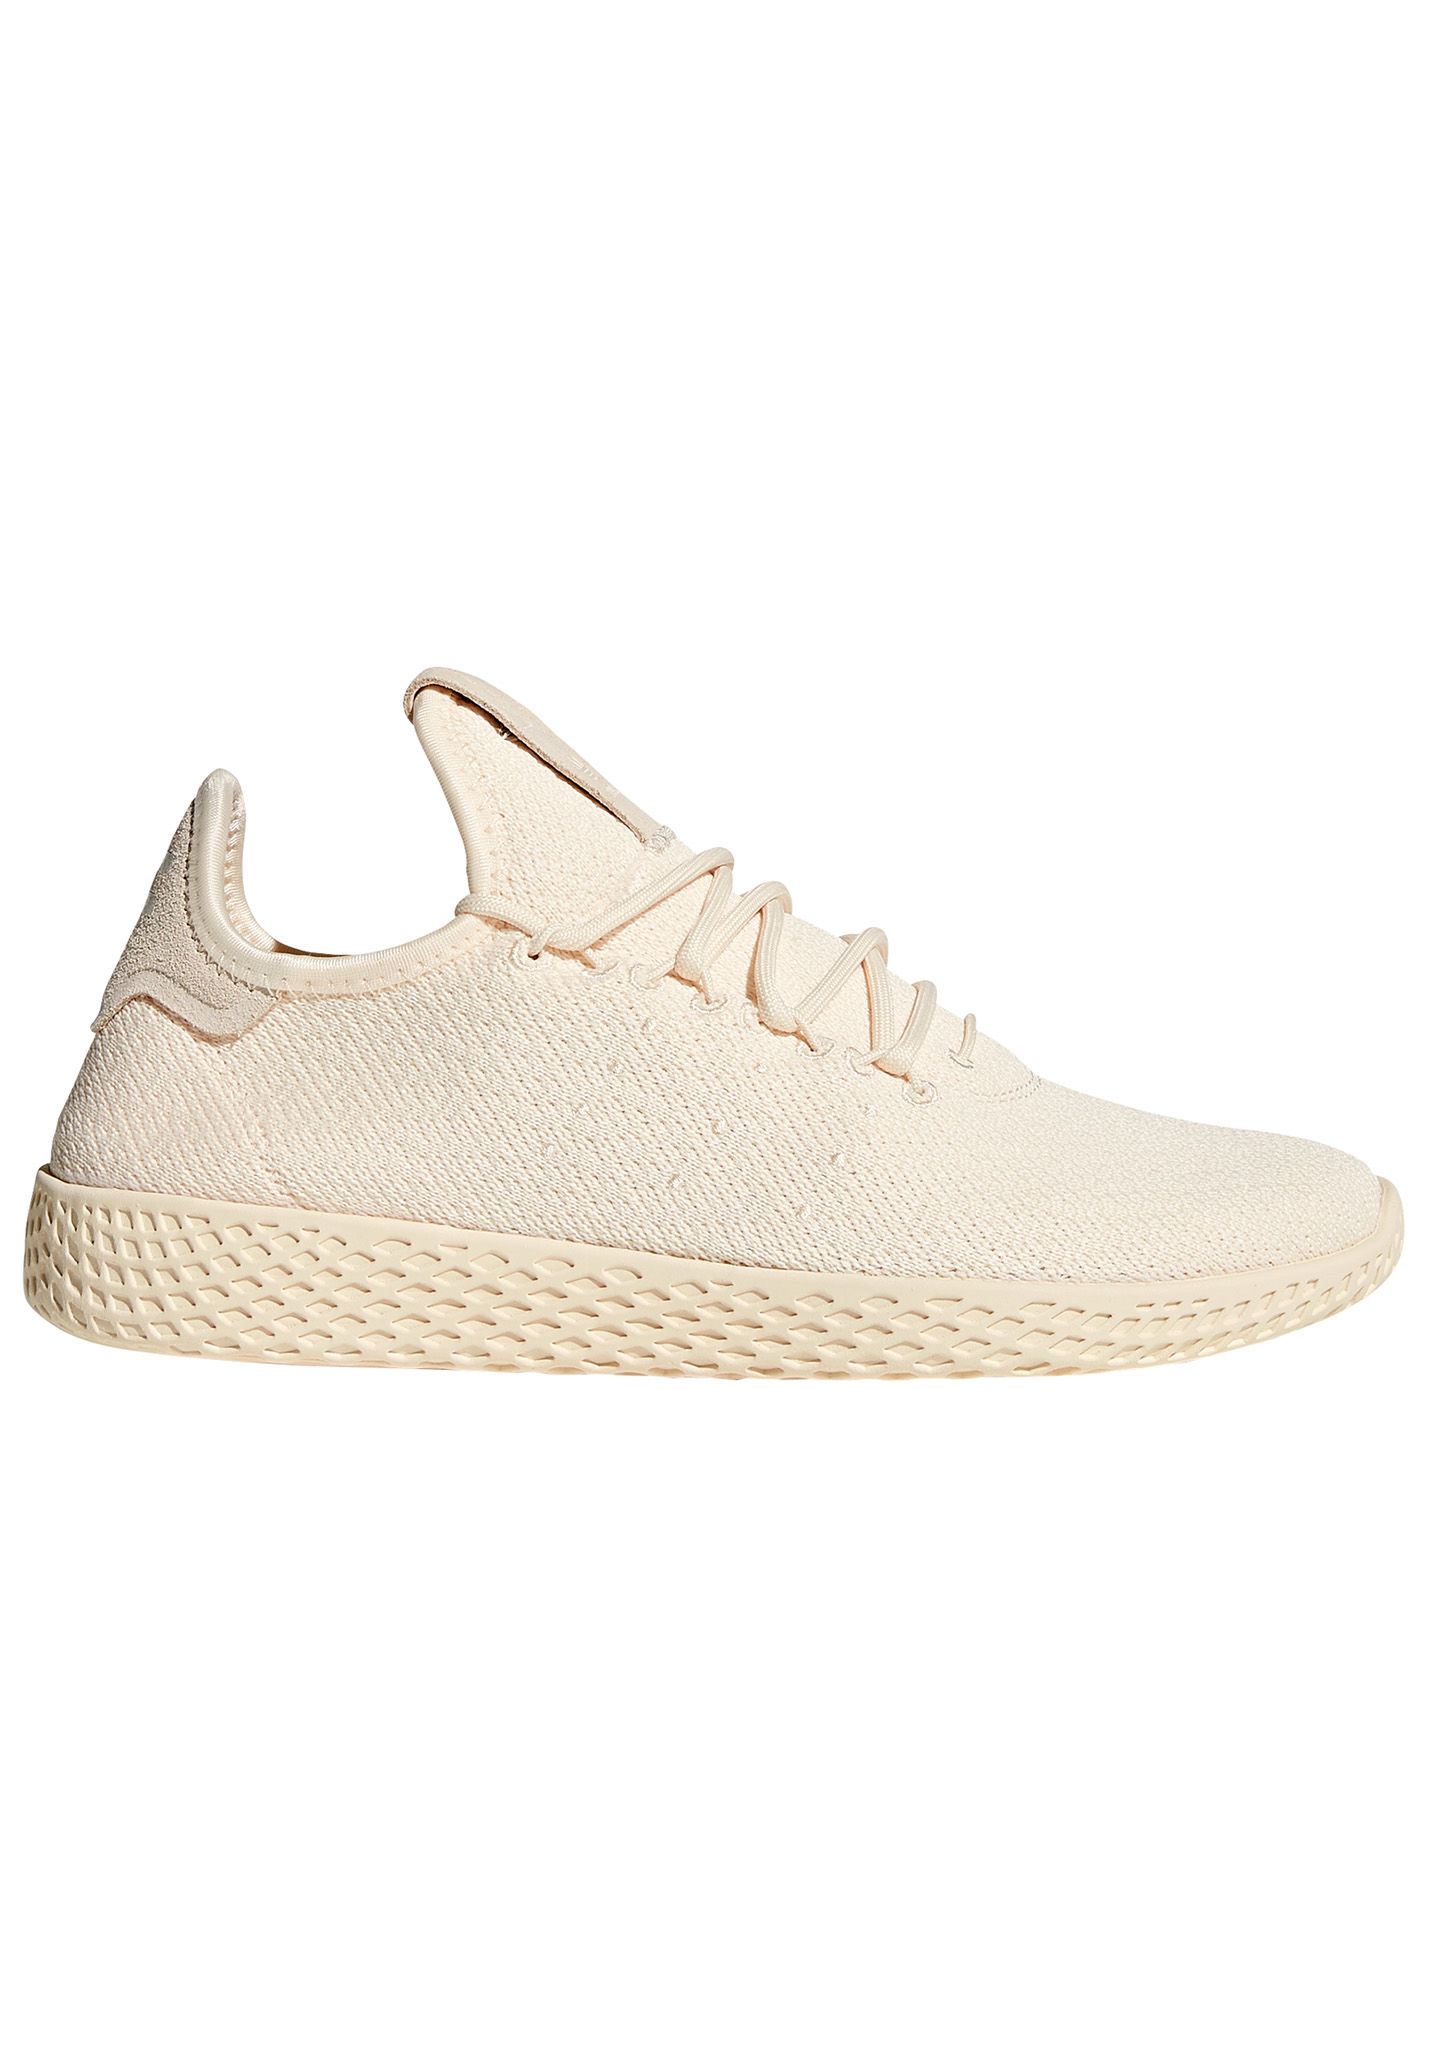 adidas Originals Pharrell Williams Tennis Hu Sneaker für Damen Beige